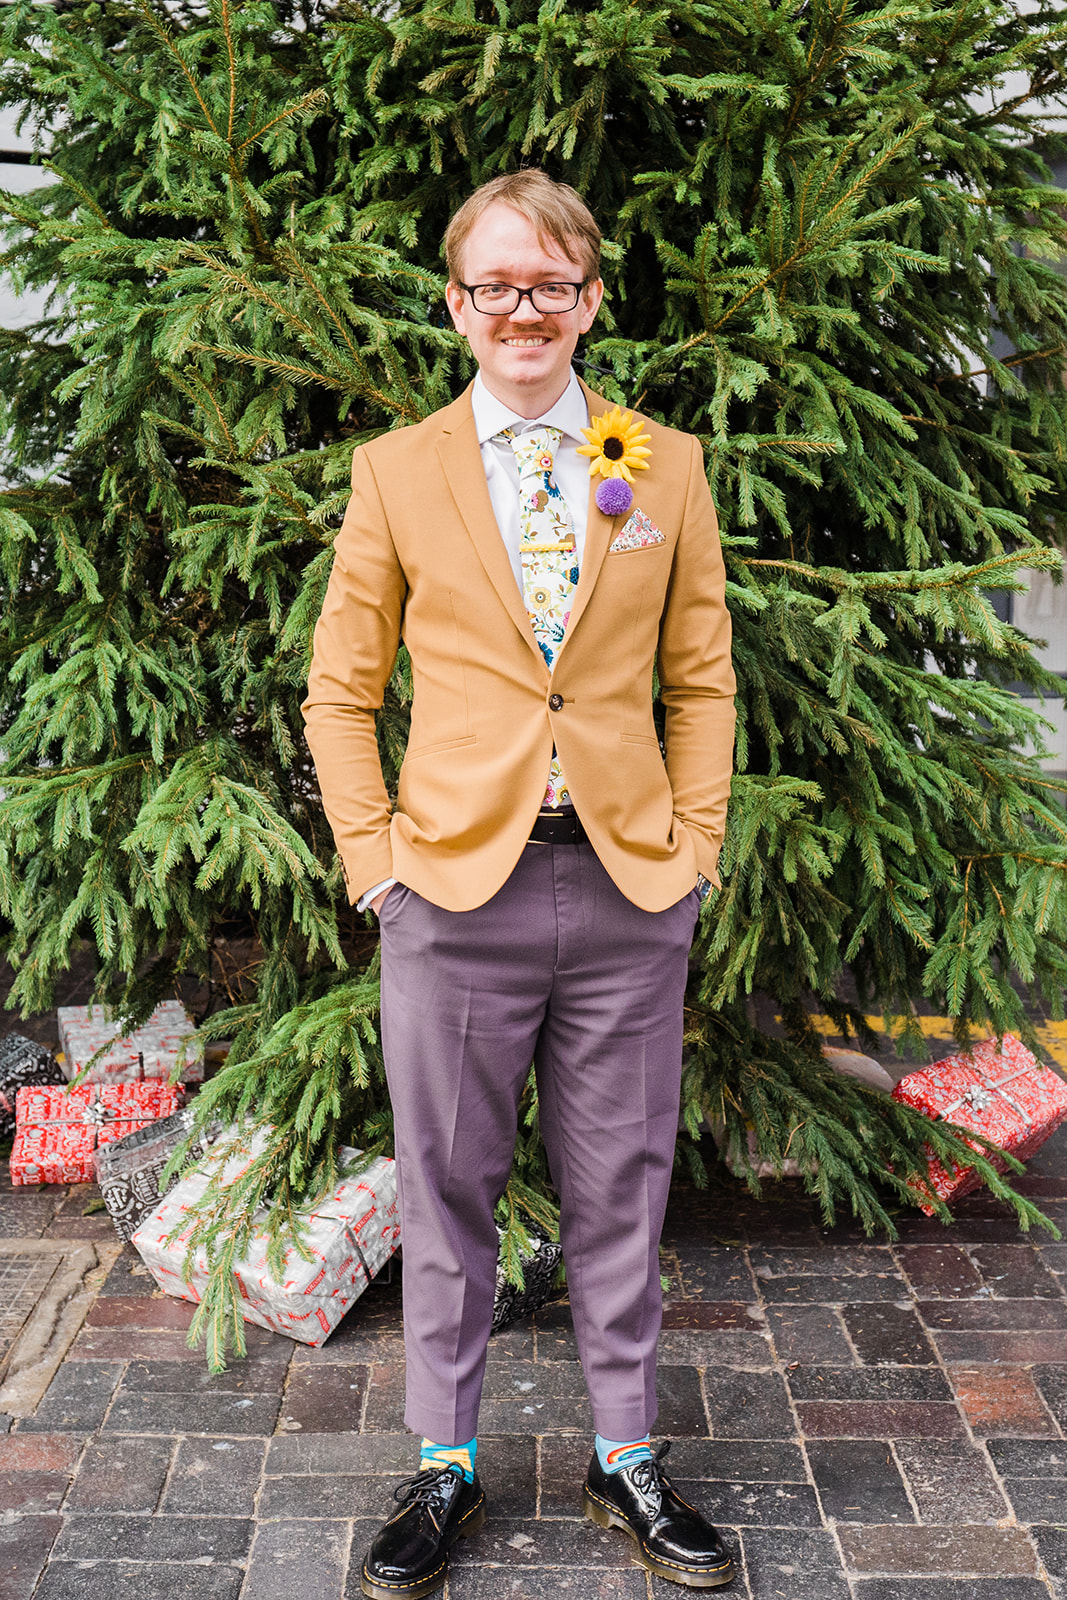 alternative groom wearing mismatched suit with floral pattern tie and sunflower button hole